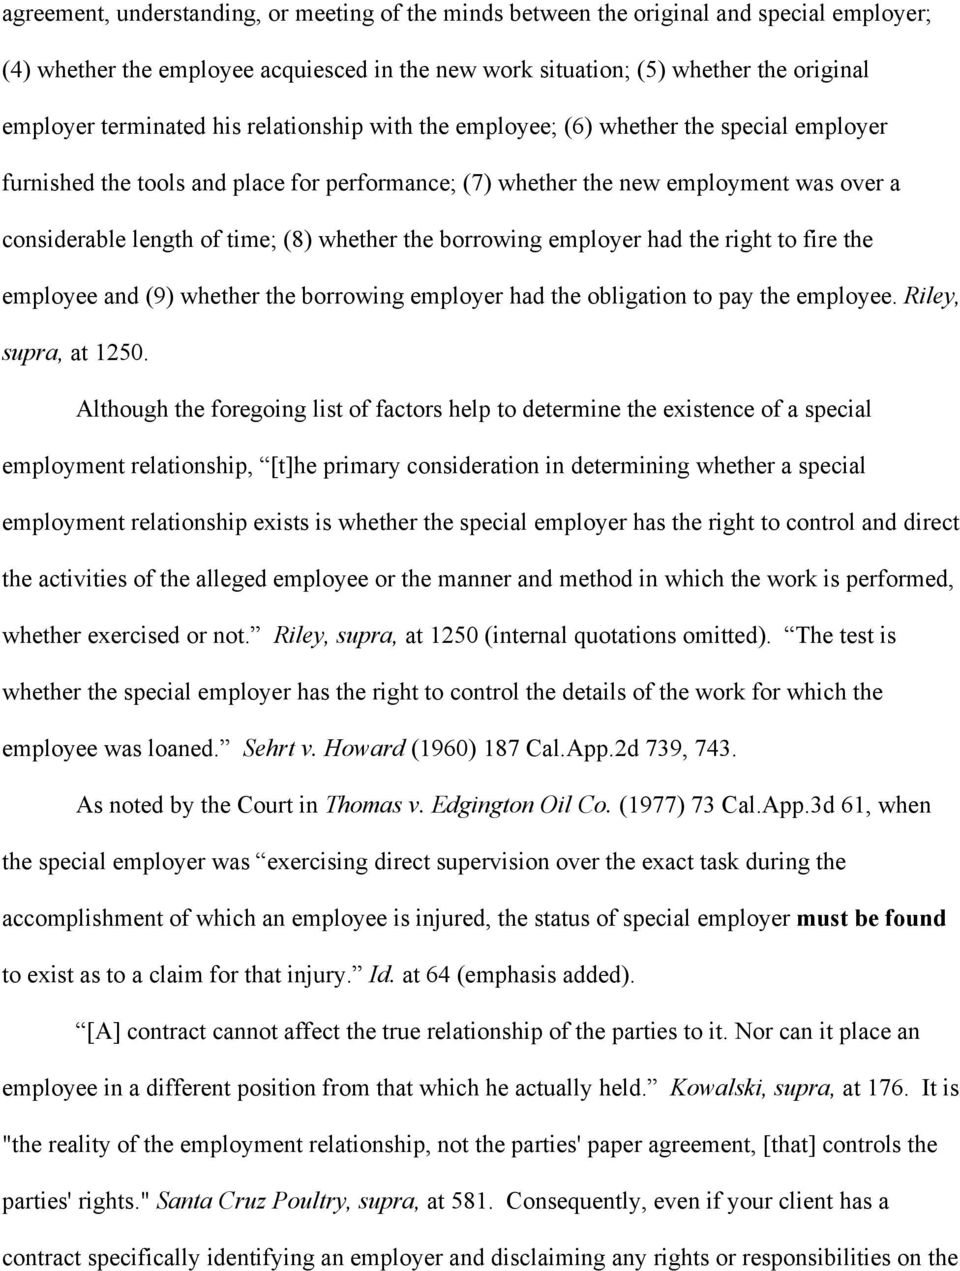 (8) whether the borrowing employer had the right to fire the employee and (9) whether the borrowing employer had the obligation to pay the employee. Riley, supra, at 1250.